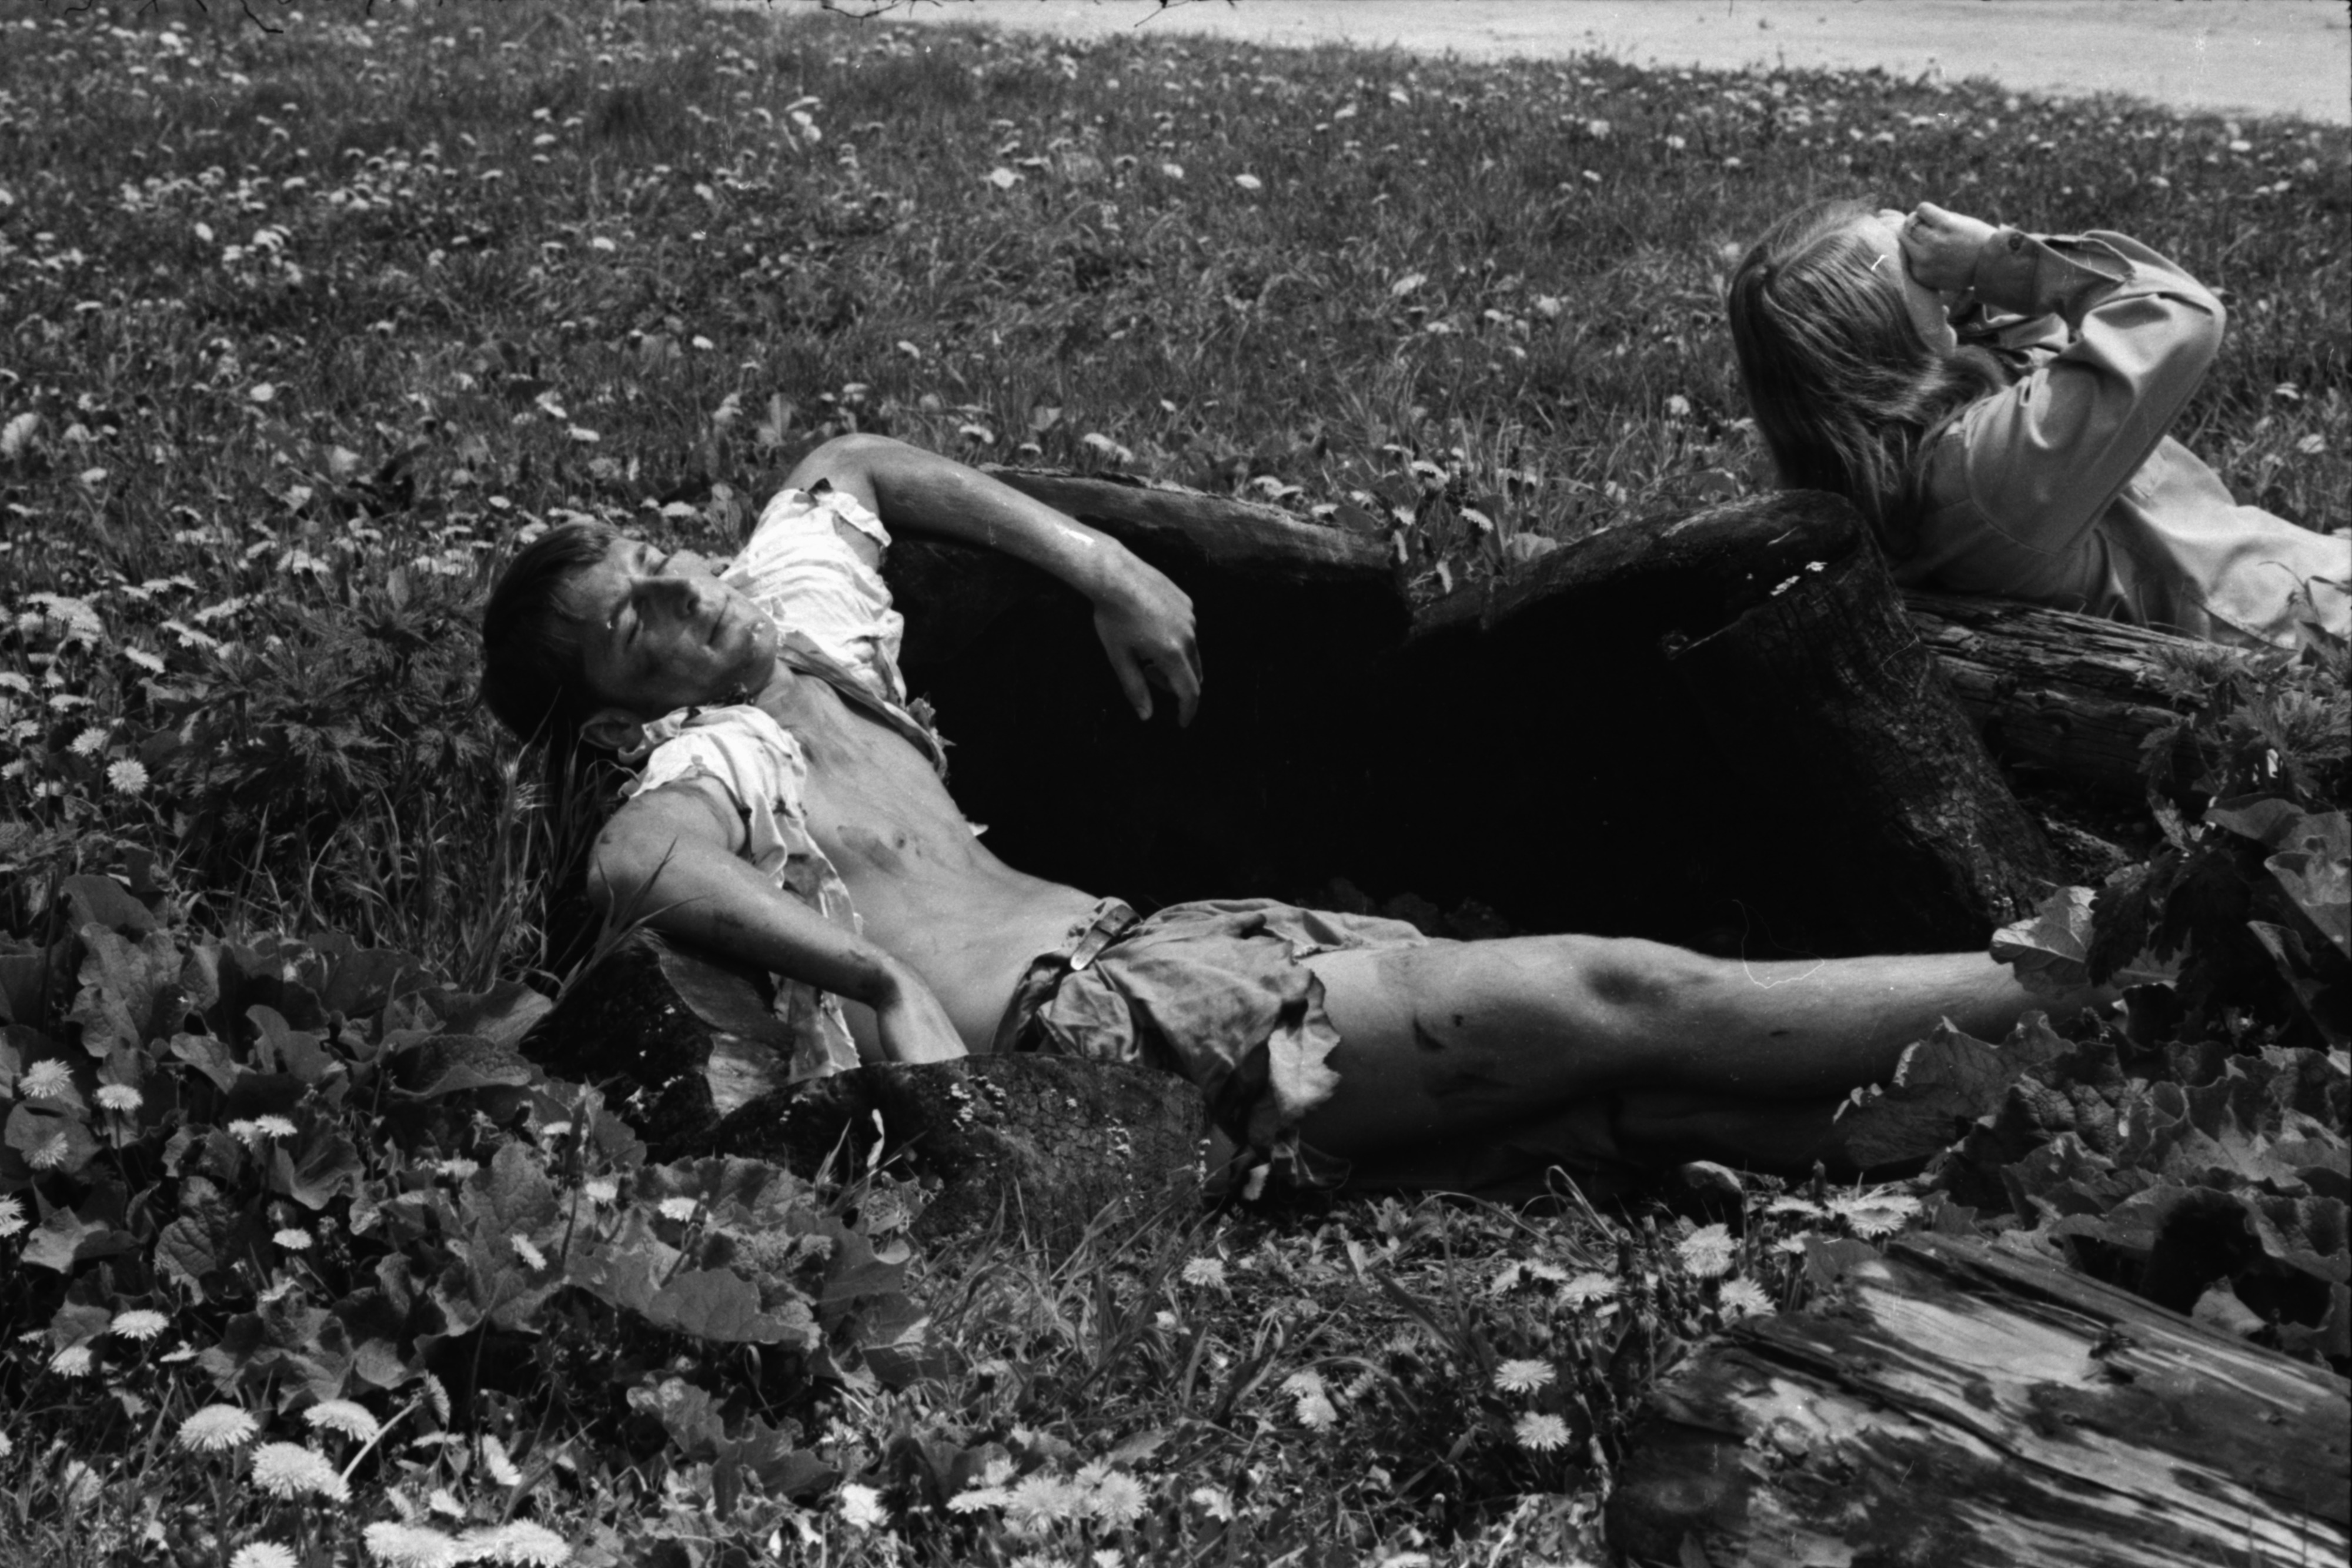 High School Student Acts as Injured Victim in Tornado Exercise, May 1969 image